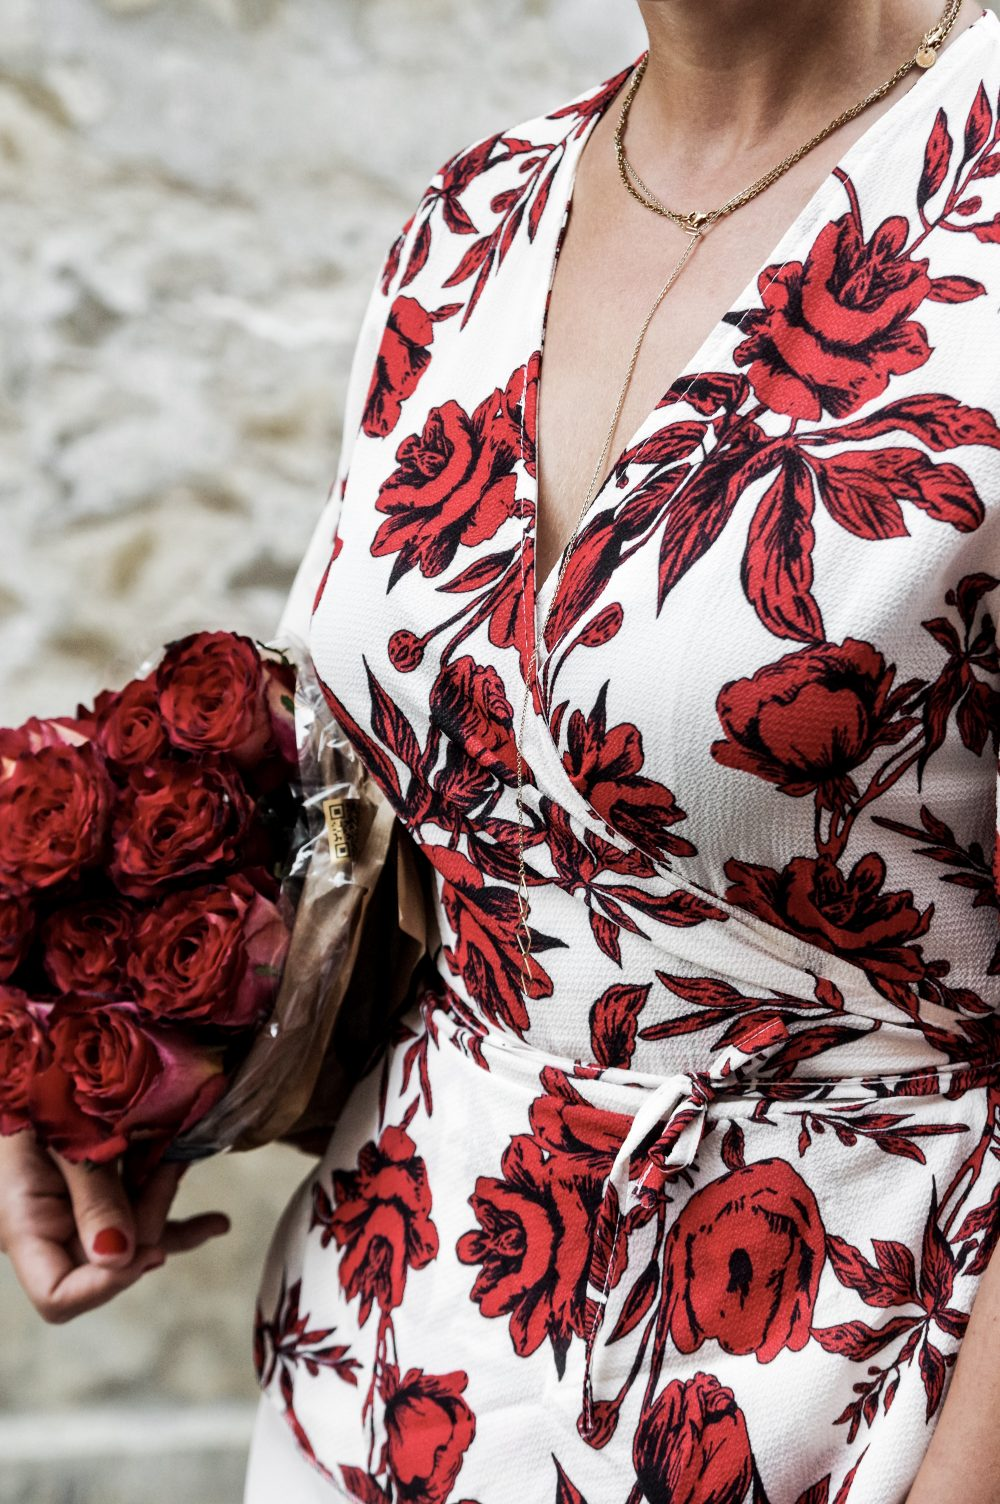 floral summer shirt blouse, boohoo shirt, work wear shirt,summer shirts and blouses for work and casual, summer fashion, summer style 2018, summer outfits, work wear summer outfits, mihabalan.com